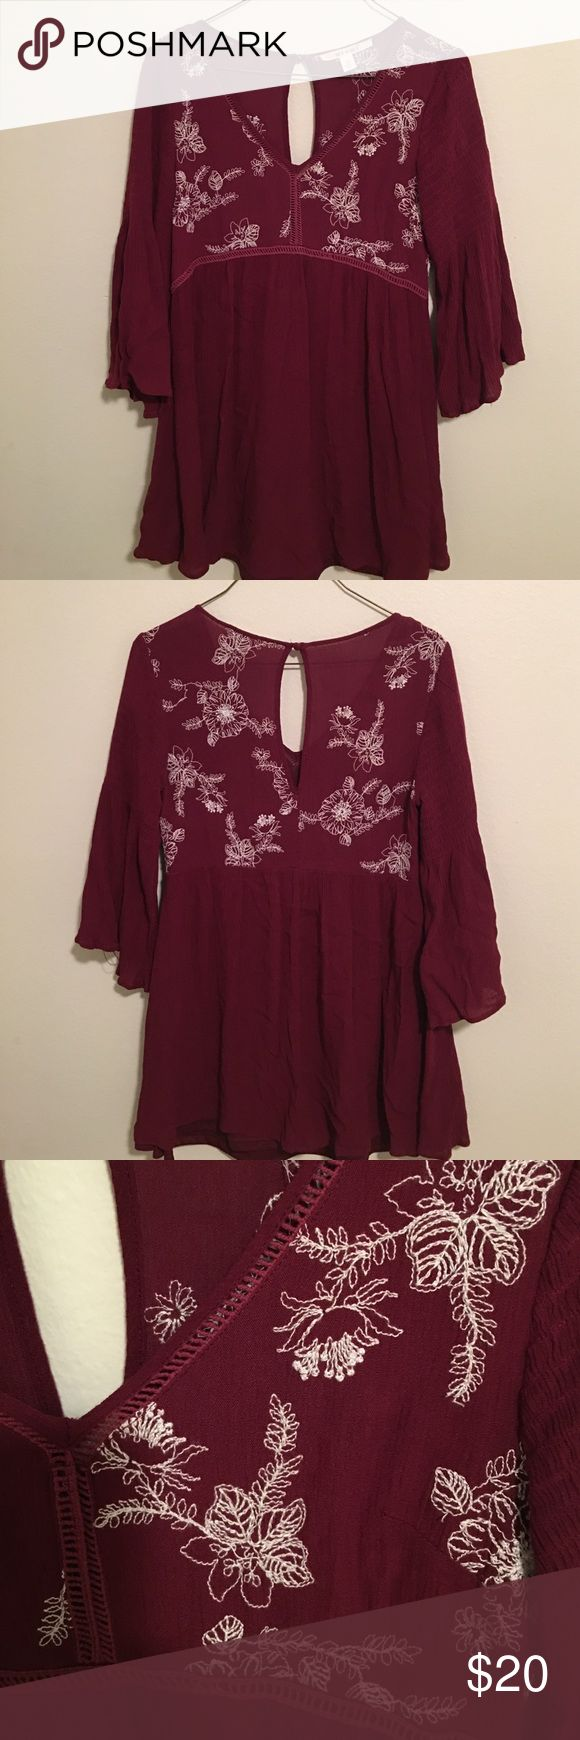 Francesca's Bell-sleeve Tunic Dress Bell-sleeve tunic dress with a keyhole back. Size: x-small. Worn twice Francesca's Collections Dresses Long Sleeve